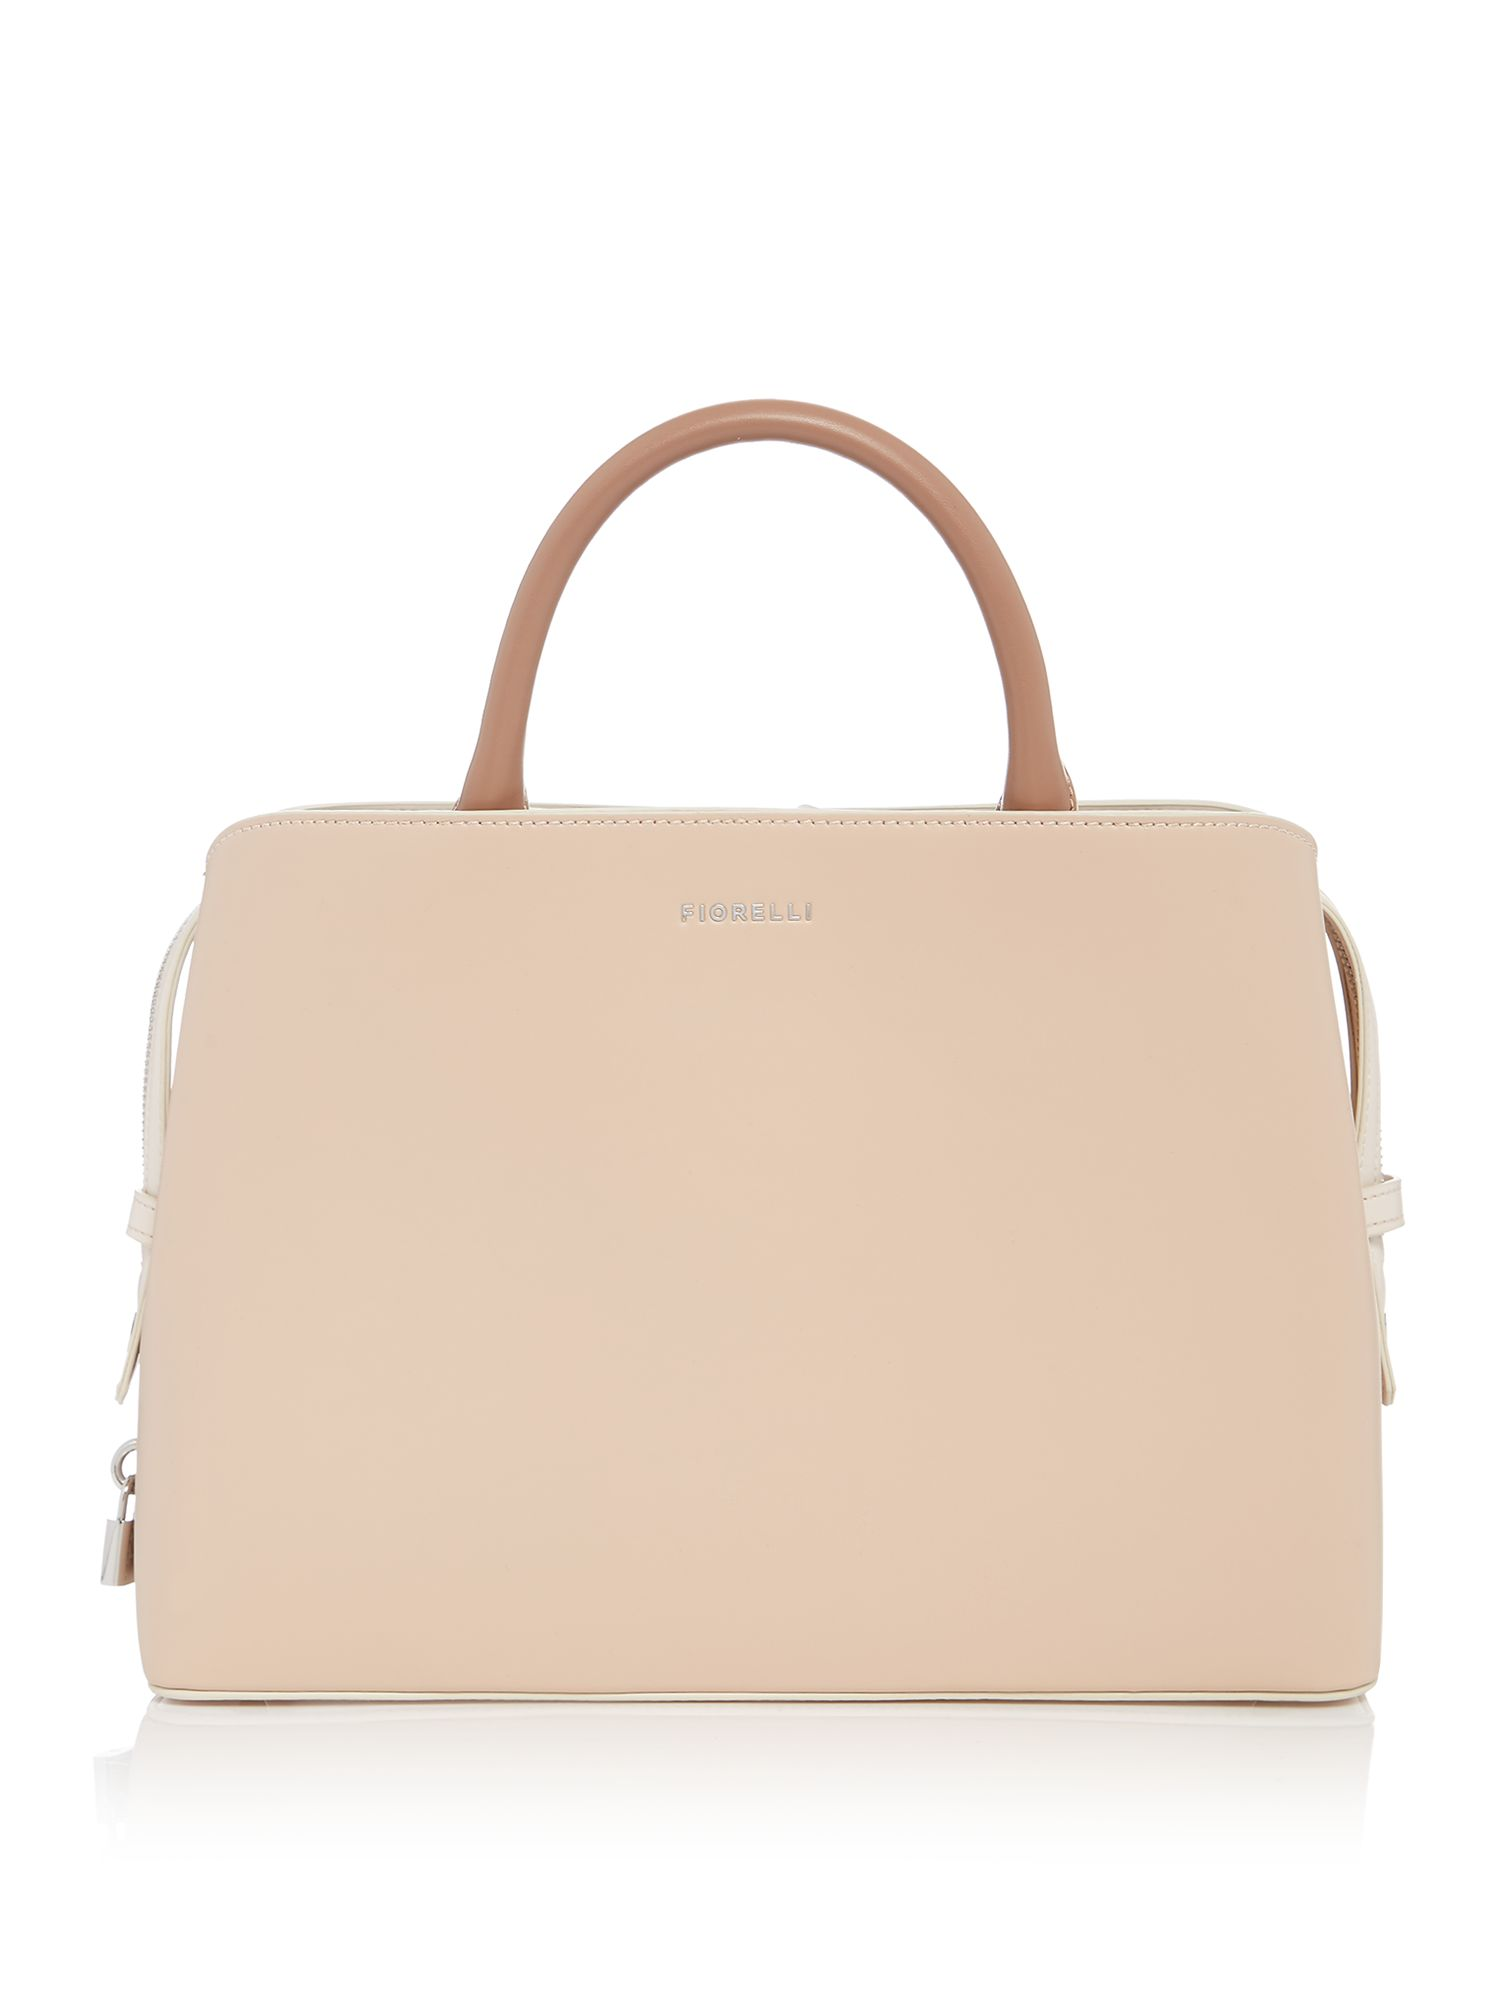 Fiorelli Bethnal triple compartment tote, Taupe